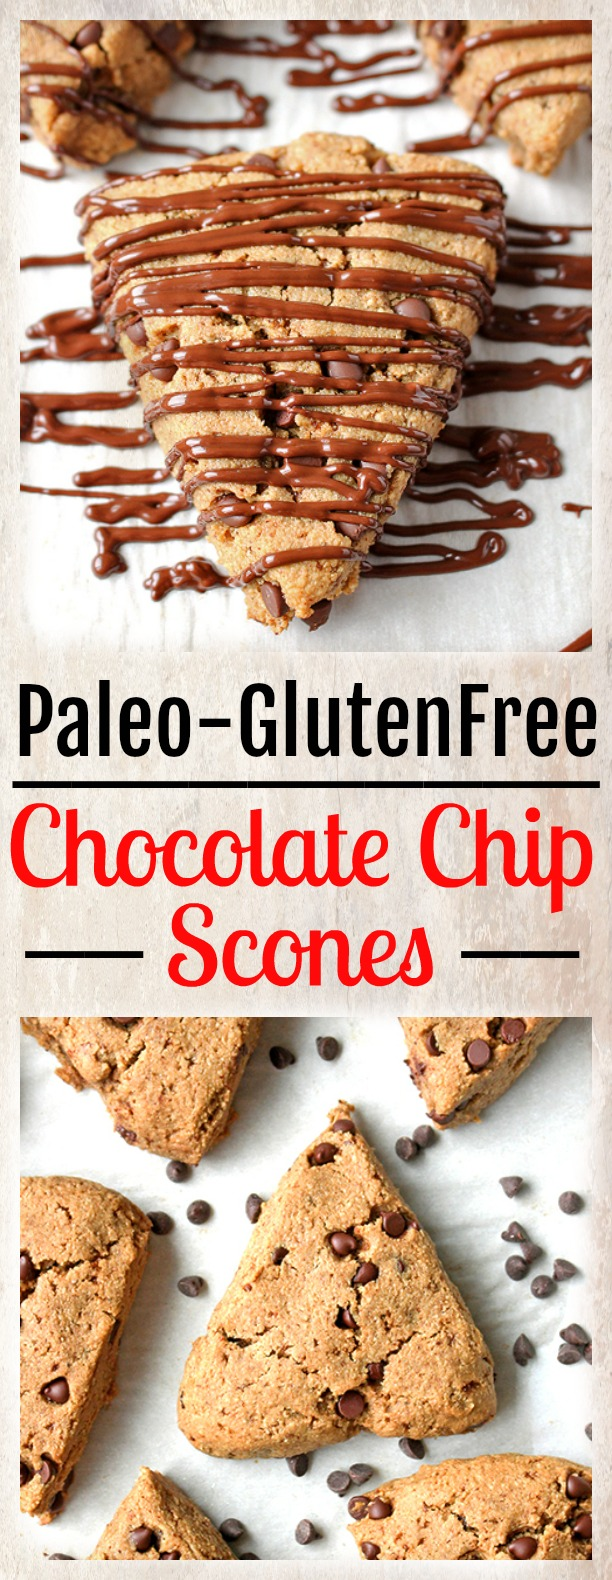 Paleo Chocolate Chip Scones - Jay's Baking Me Crazy